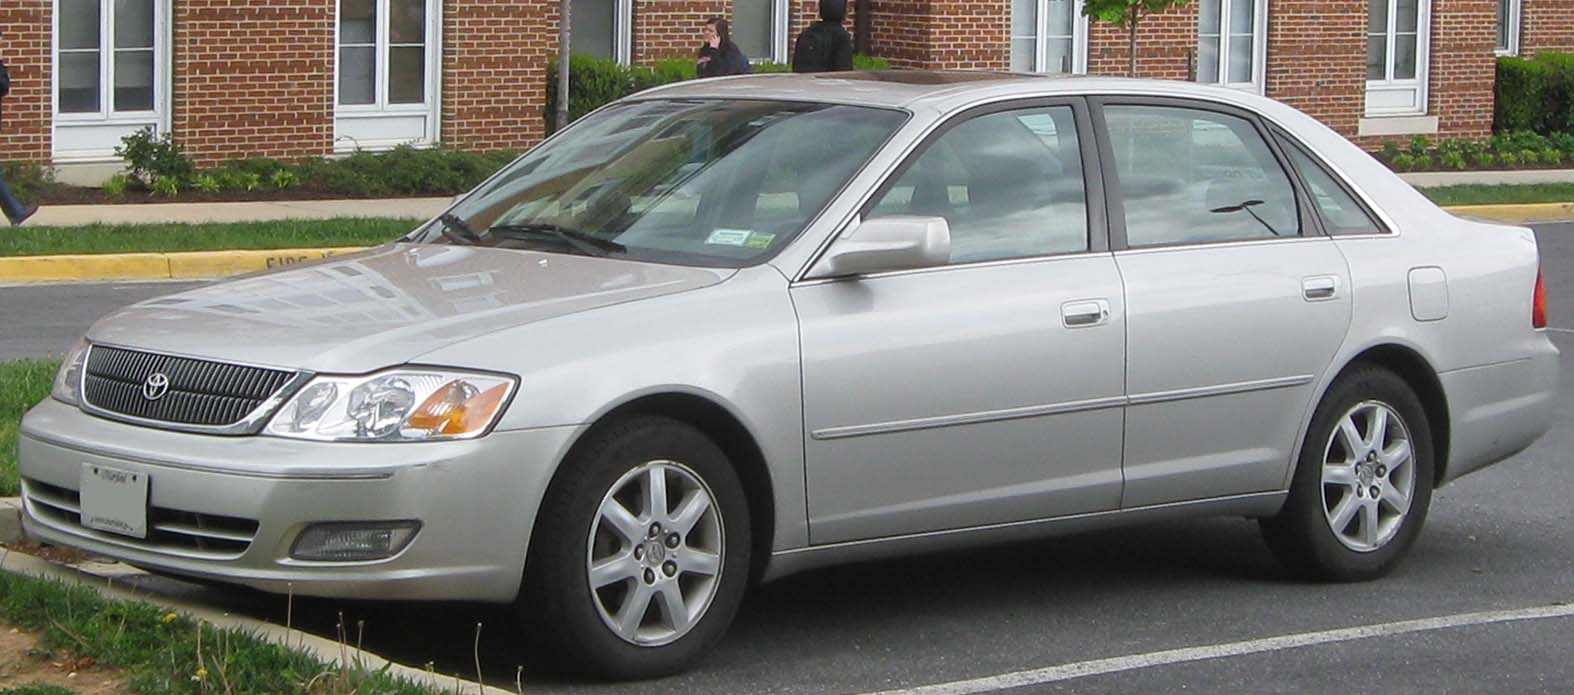 2002 toyota avalon information and photos momentcar